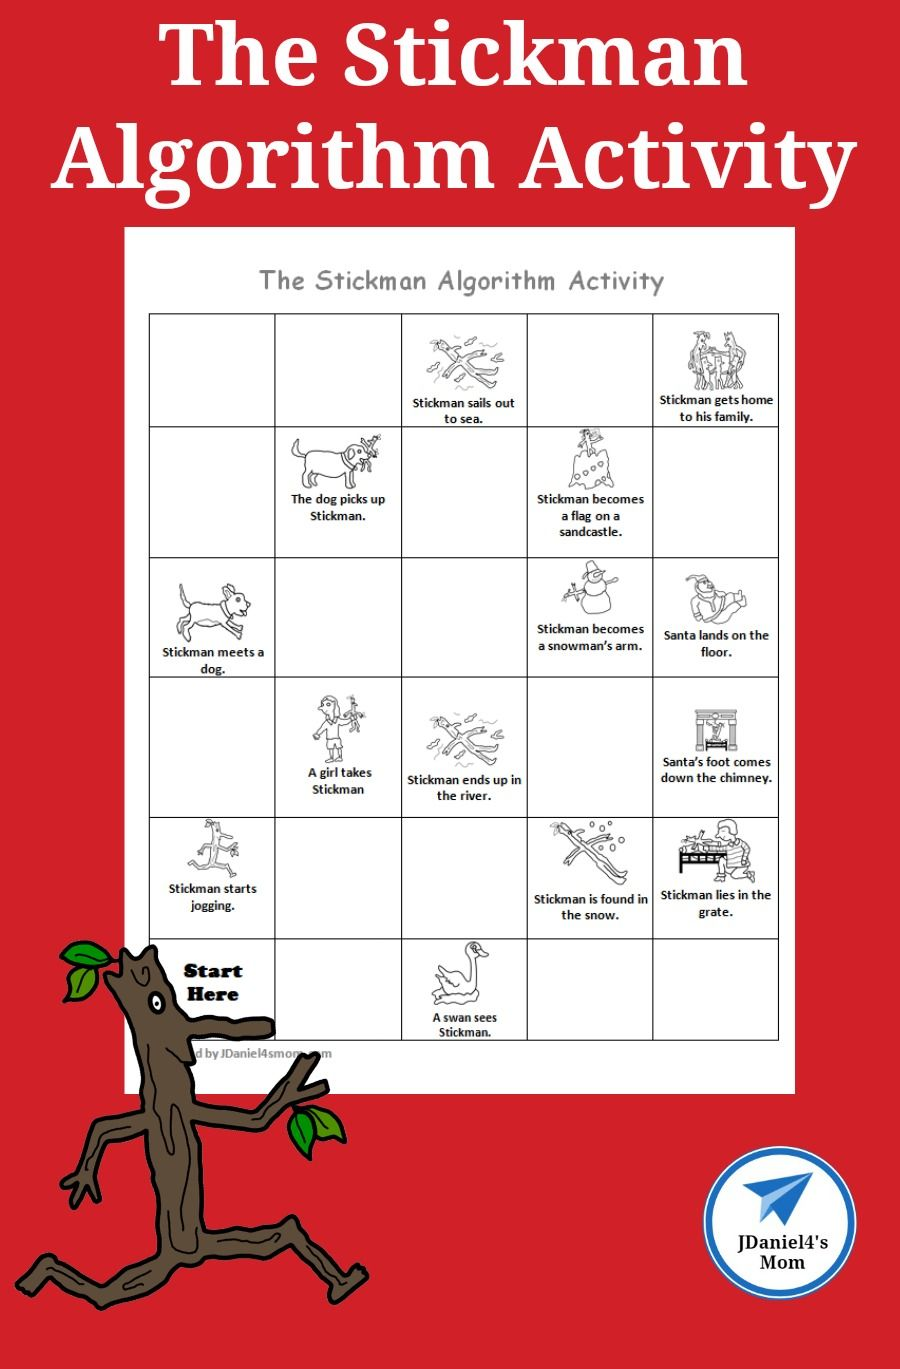 Your Children Will Have Fun Putting The Events From The Story The Stickman In Order By Building Kids Learning Activities Fun Activities For Kids Teaching Kids [ 1369 x 900 Pixel ]